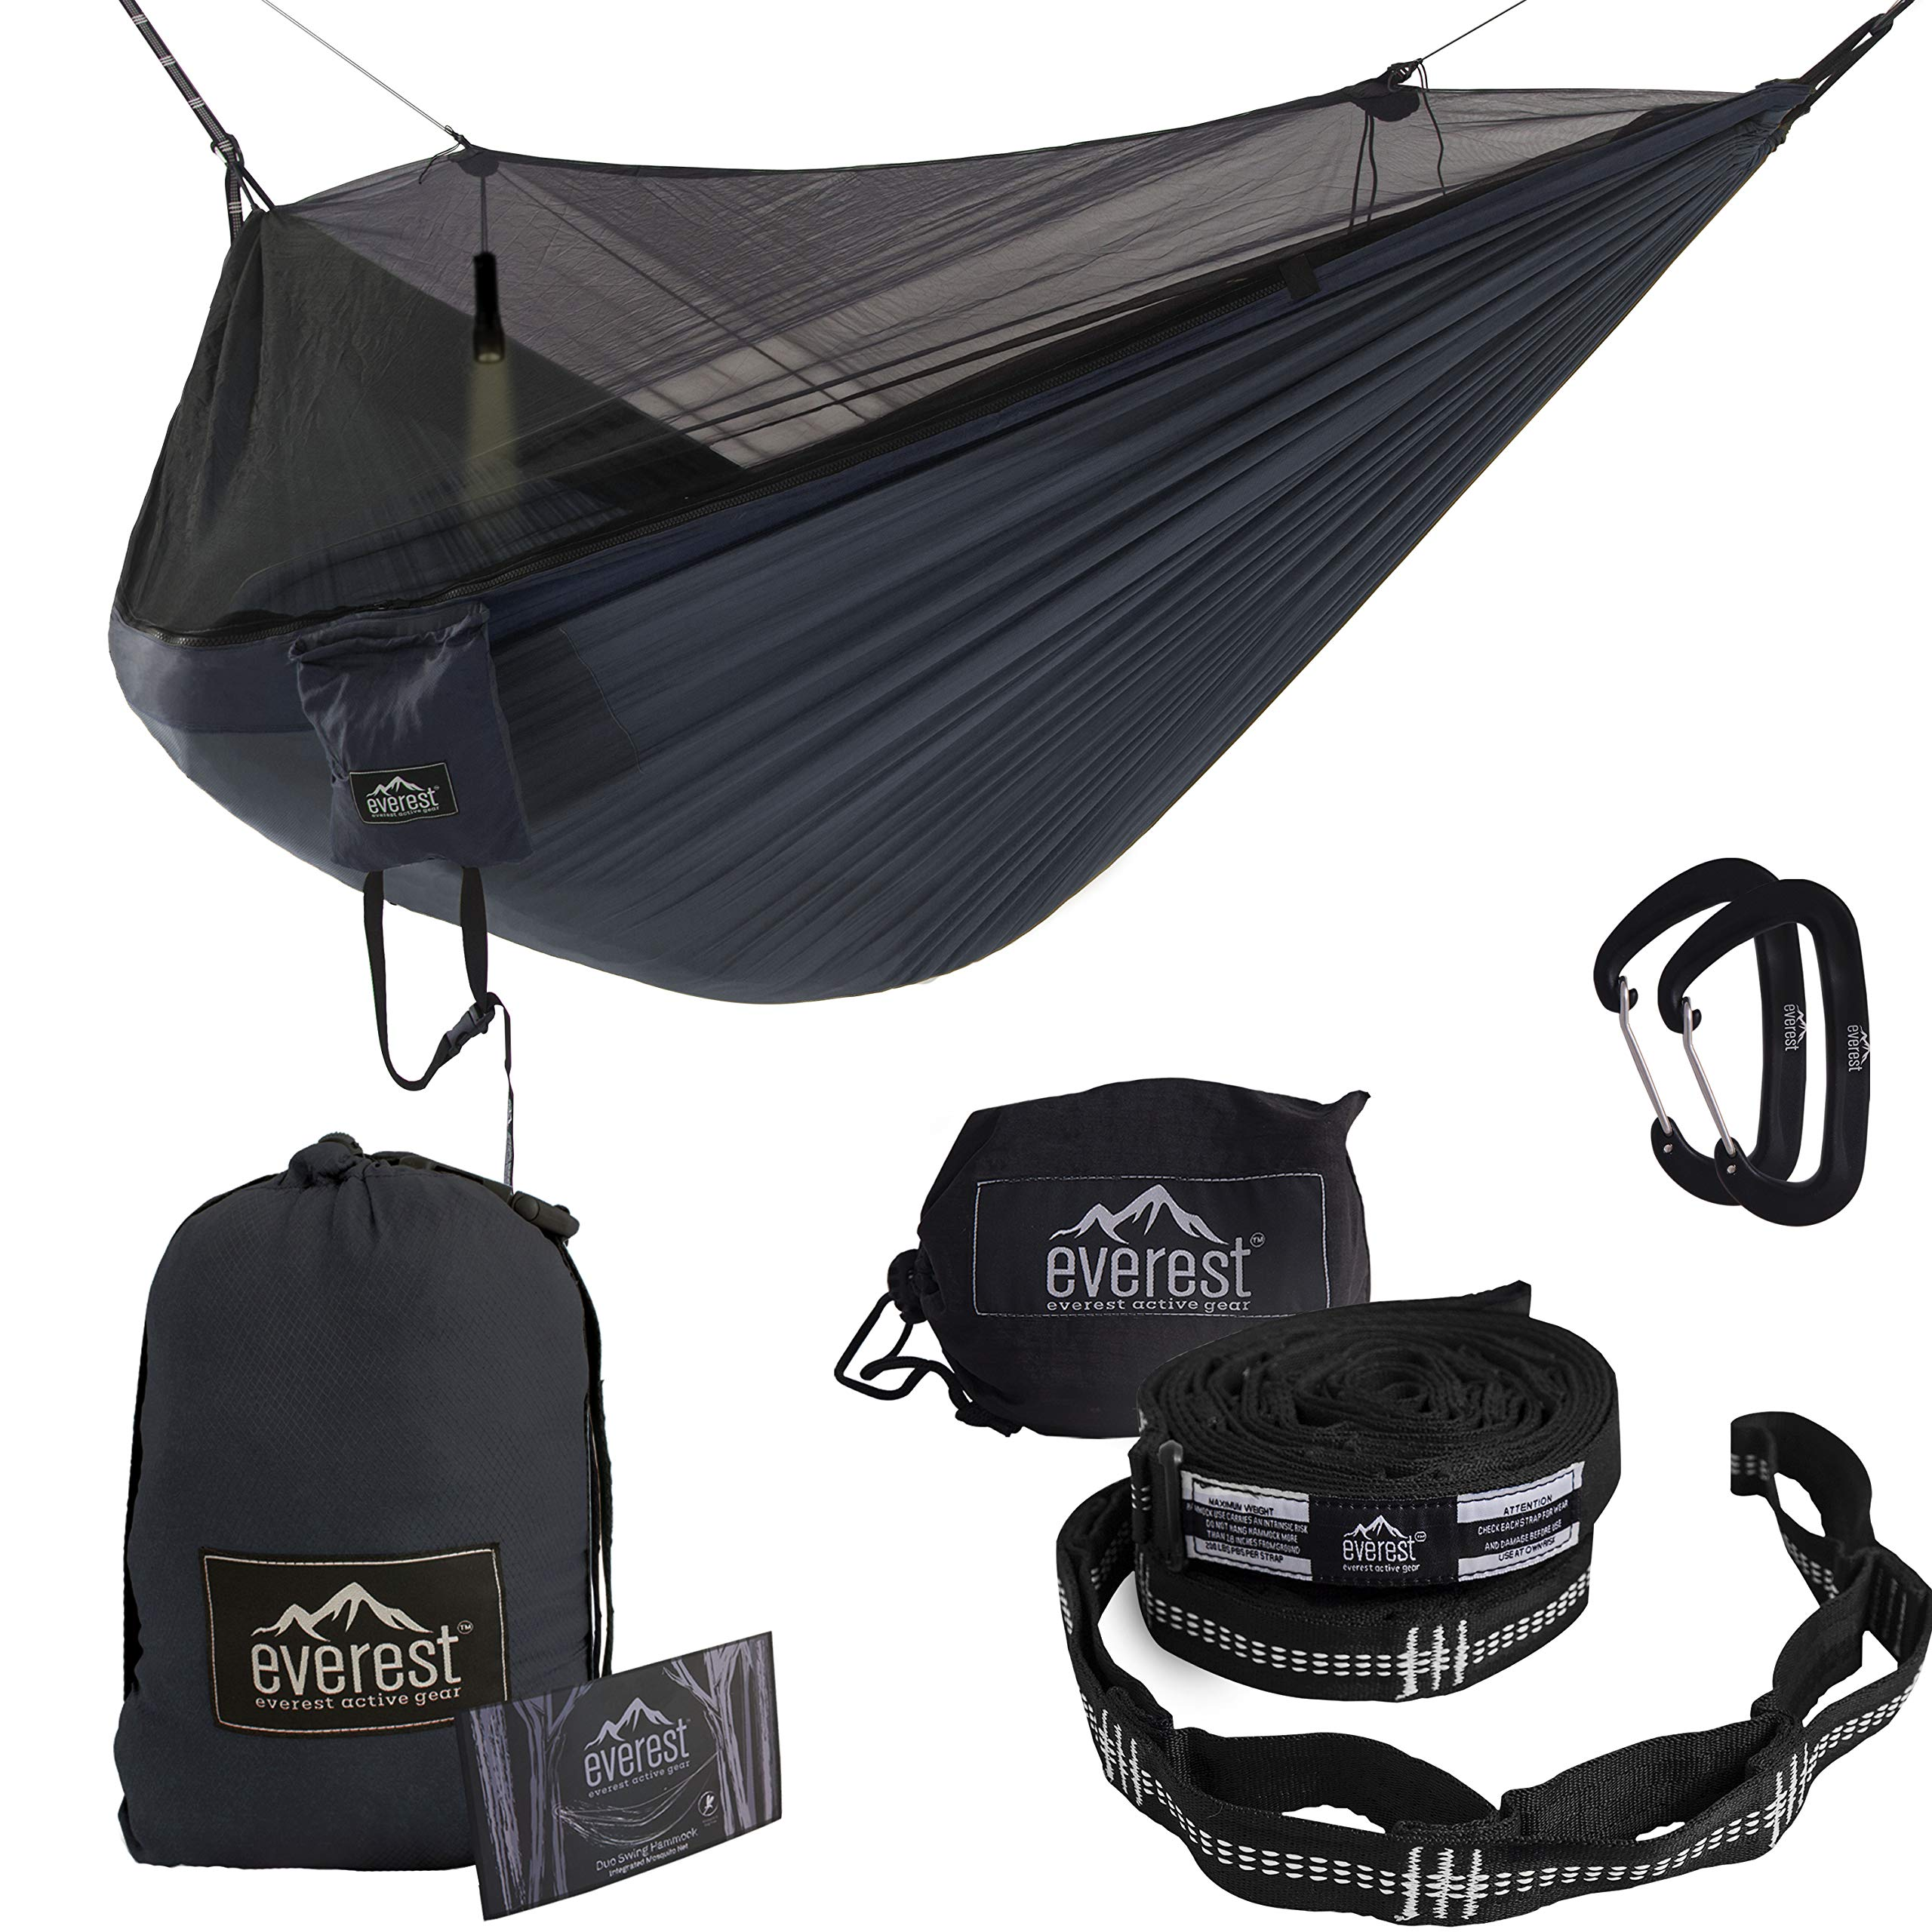 Everest Double Camping Hammock with Mosquito Net   Bug-Free Camping, Backpacking & Survival Outdoor Hammock Tent   Reversible, Integrated, Lightweight, Ripstop Nylon   Navy/Charcoal/Net Black